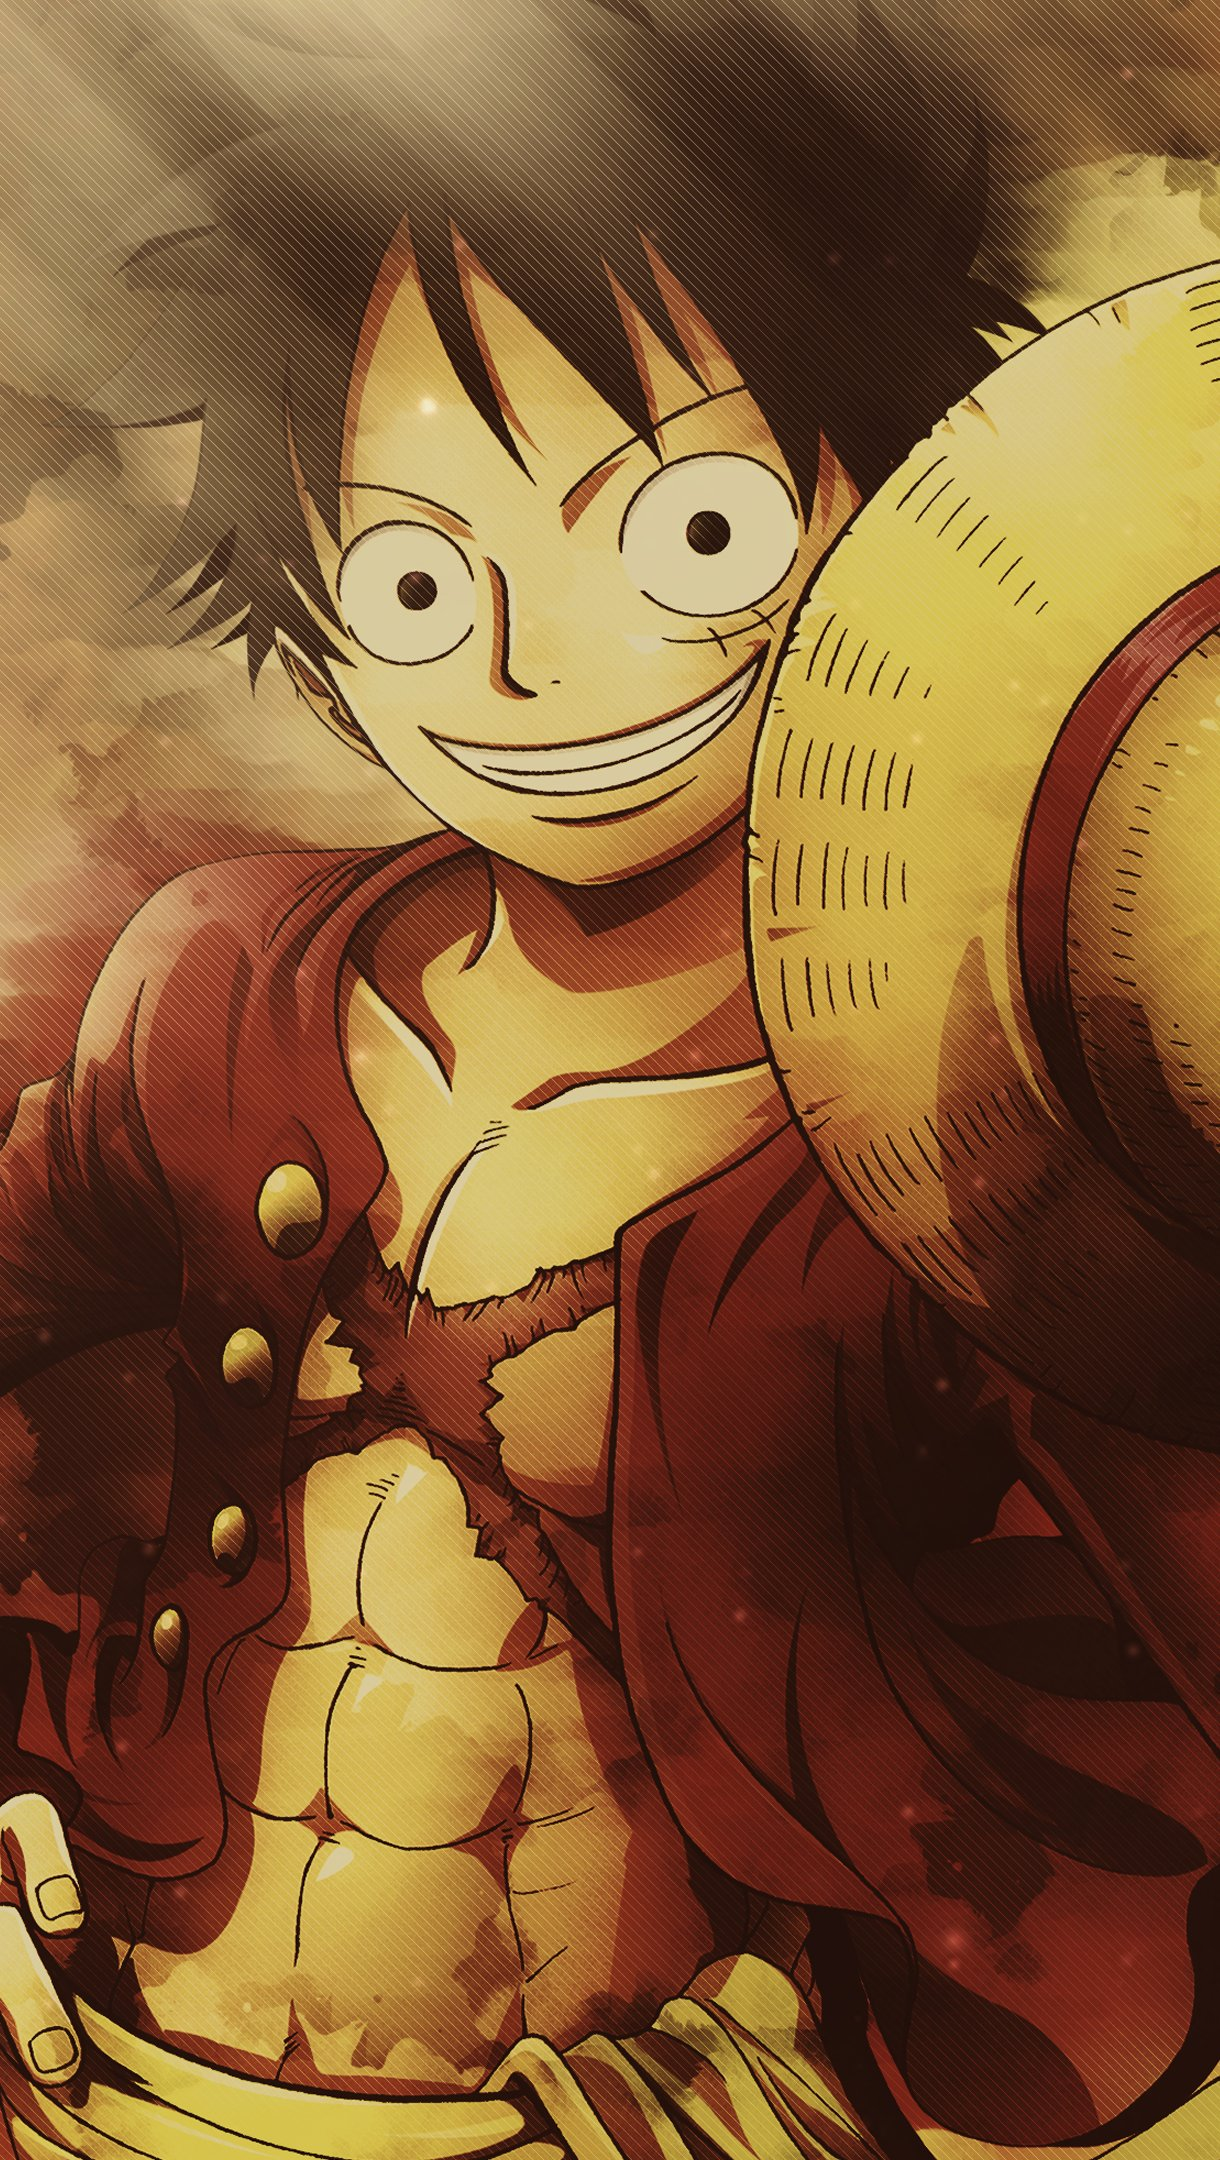 Fondos de pantalla Anime Monkey D. Luffy de One Piece Vertical